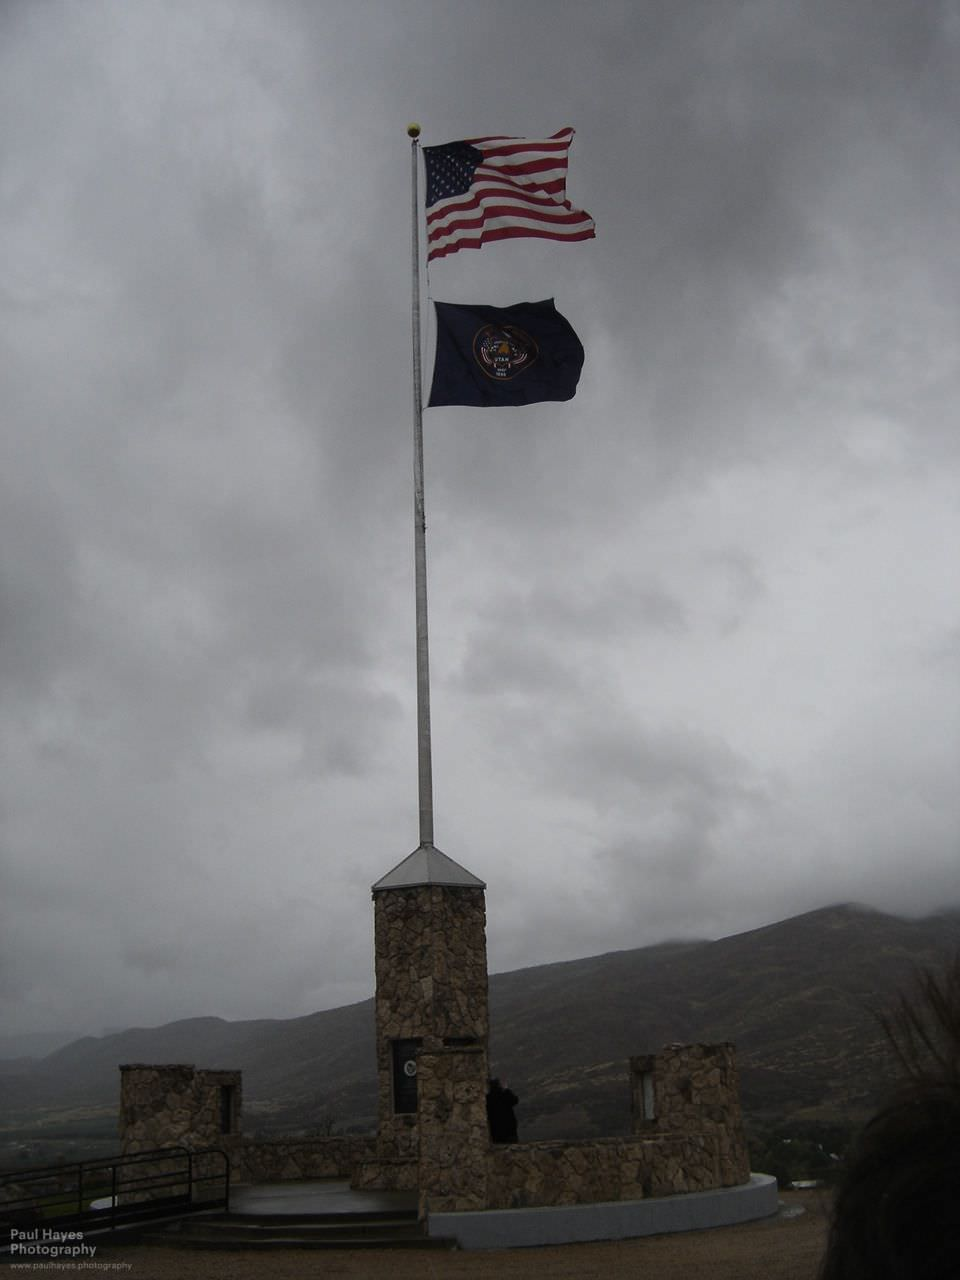 Monument in Heber city